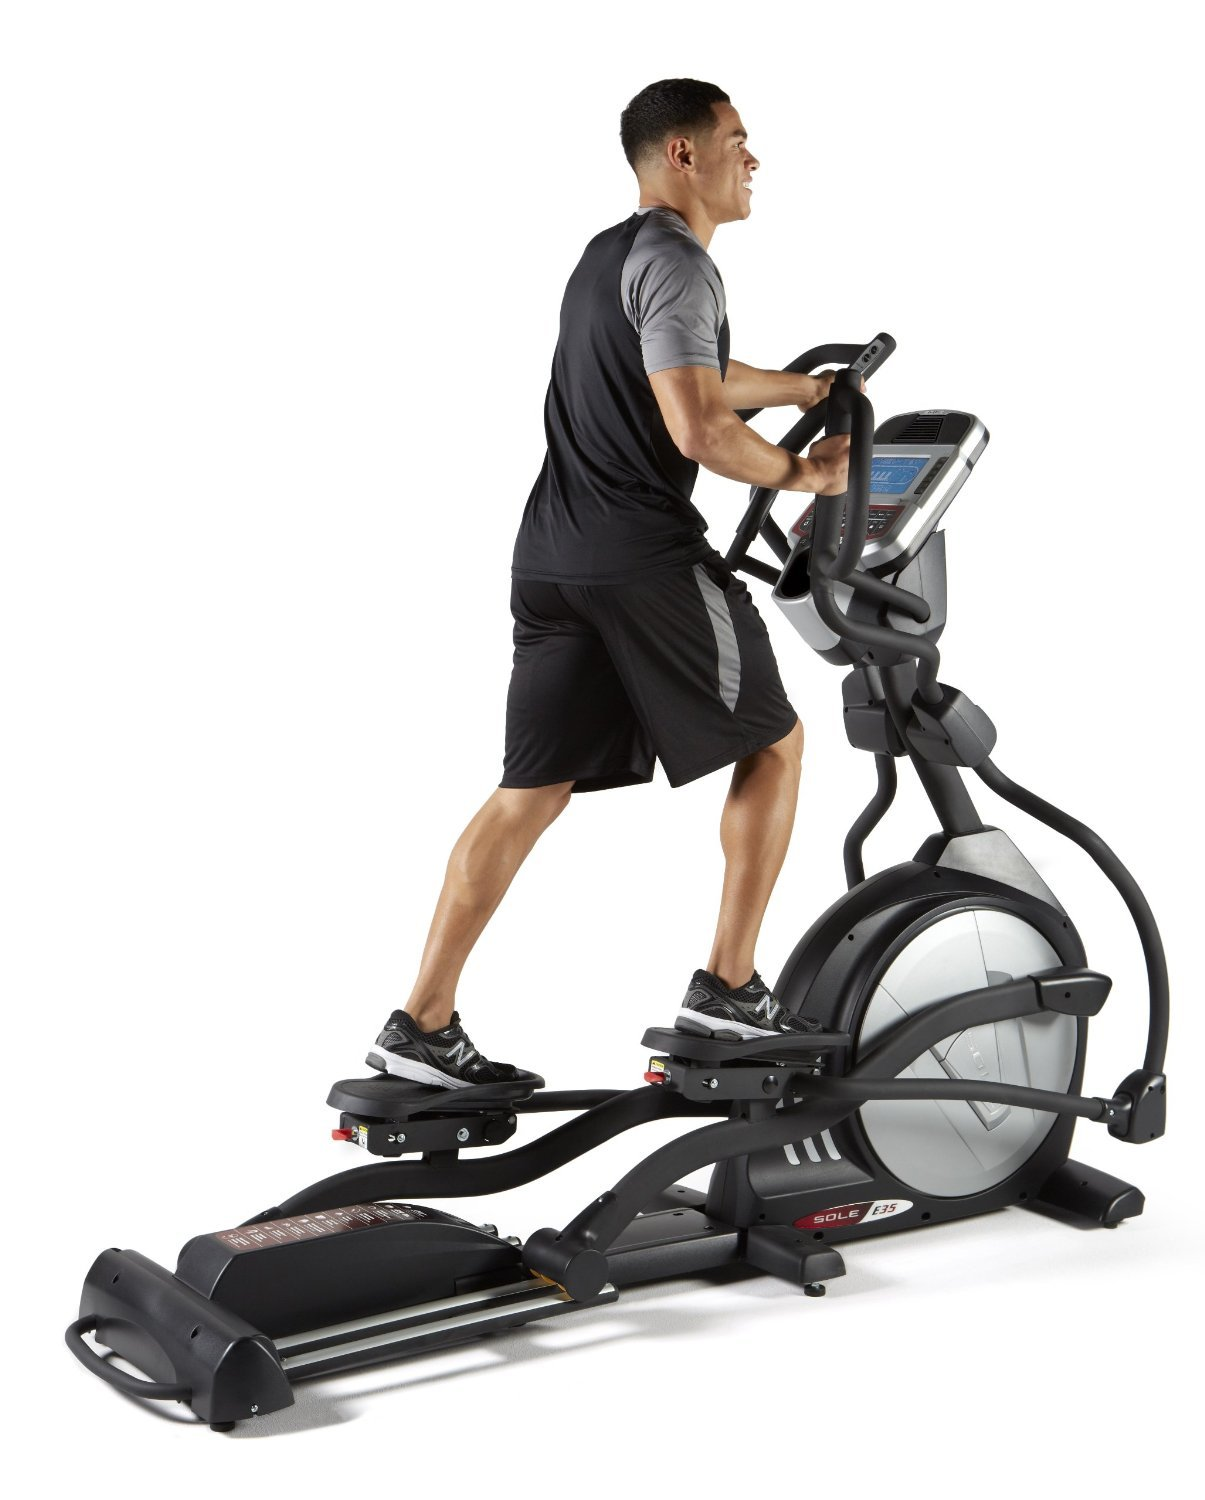 image showing the Sole Fitness E35 Elliptical